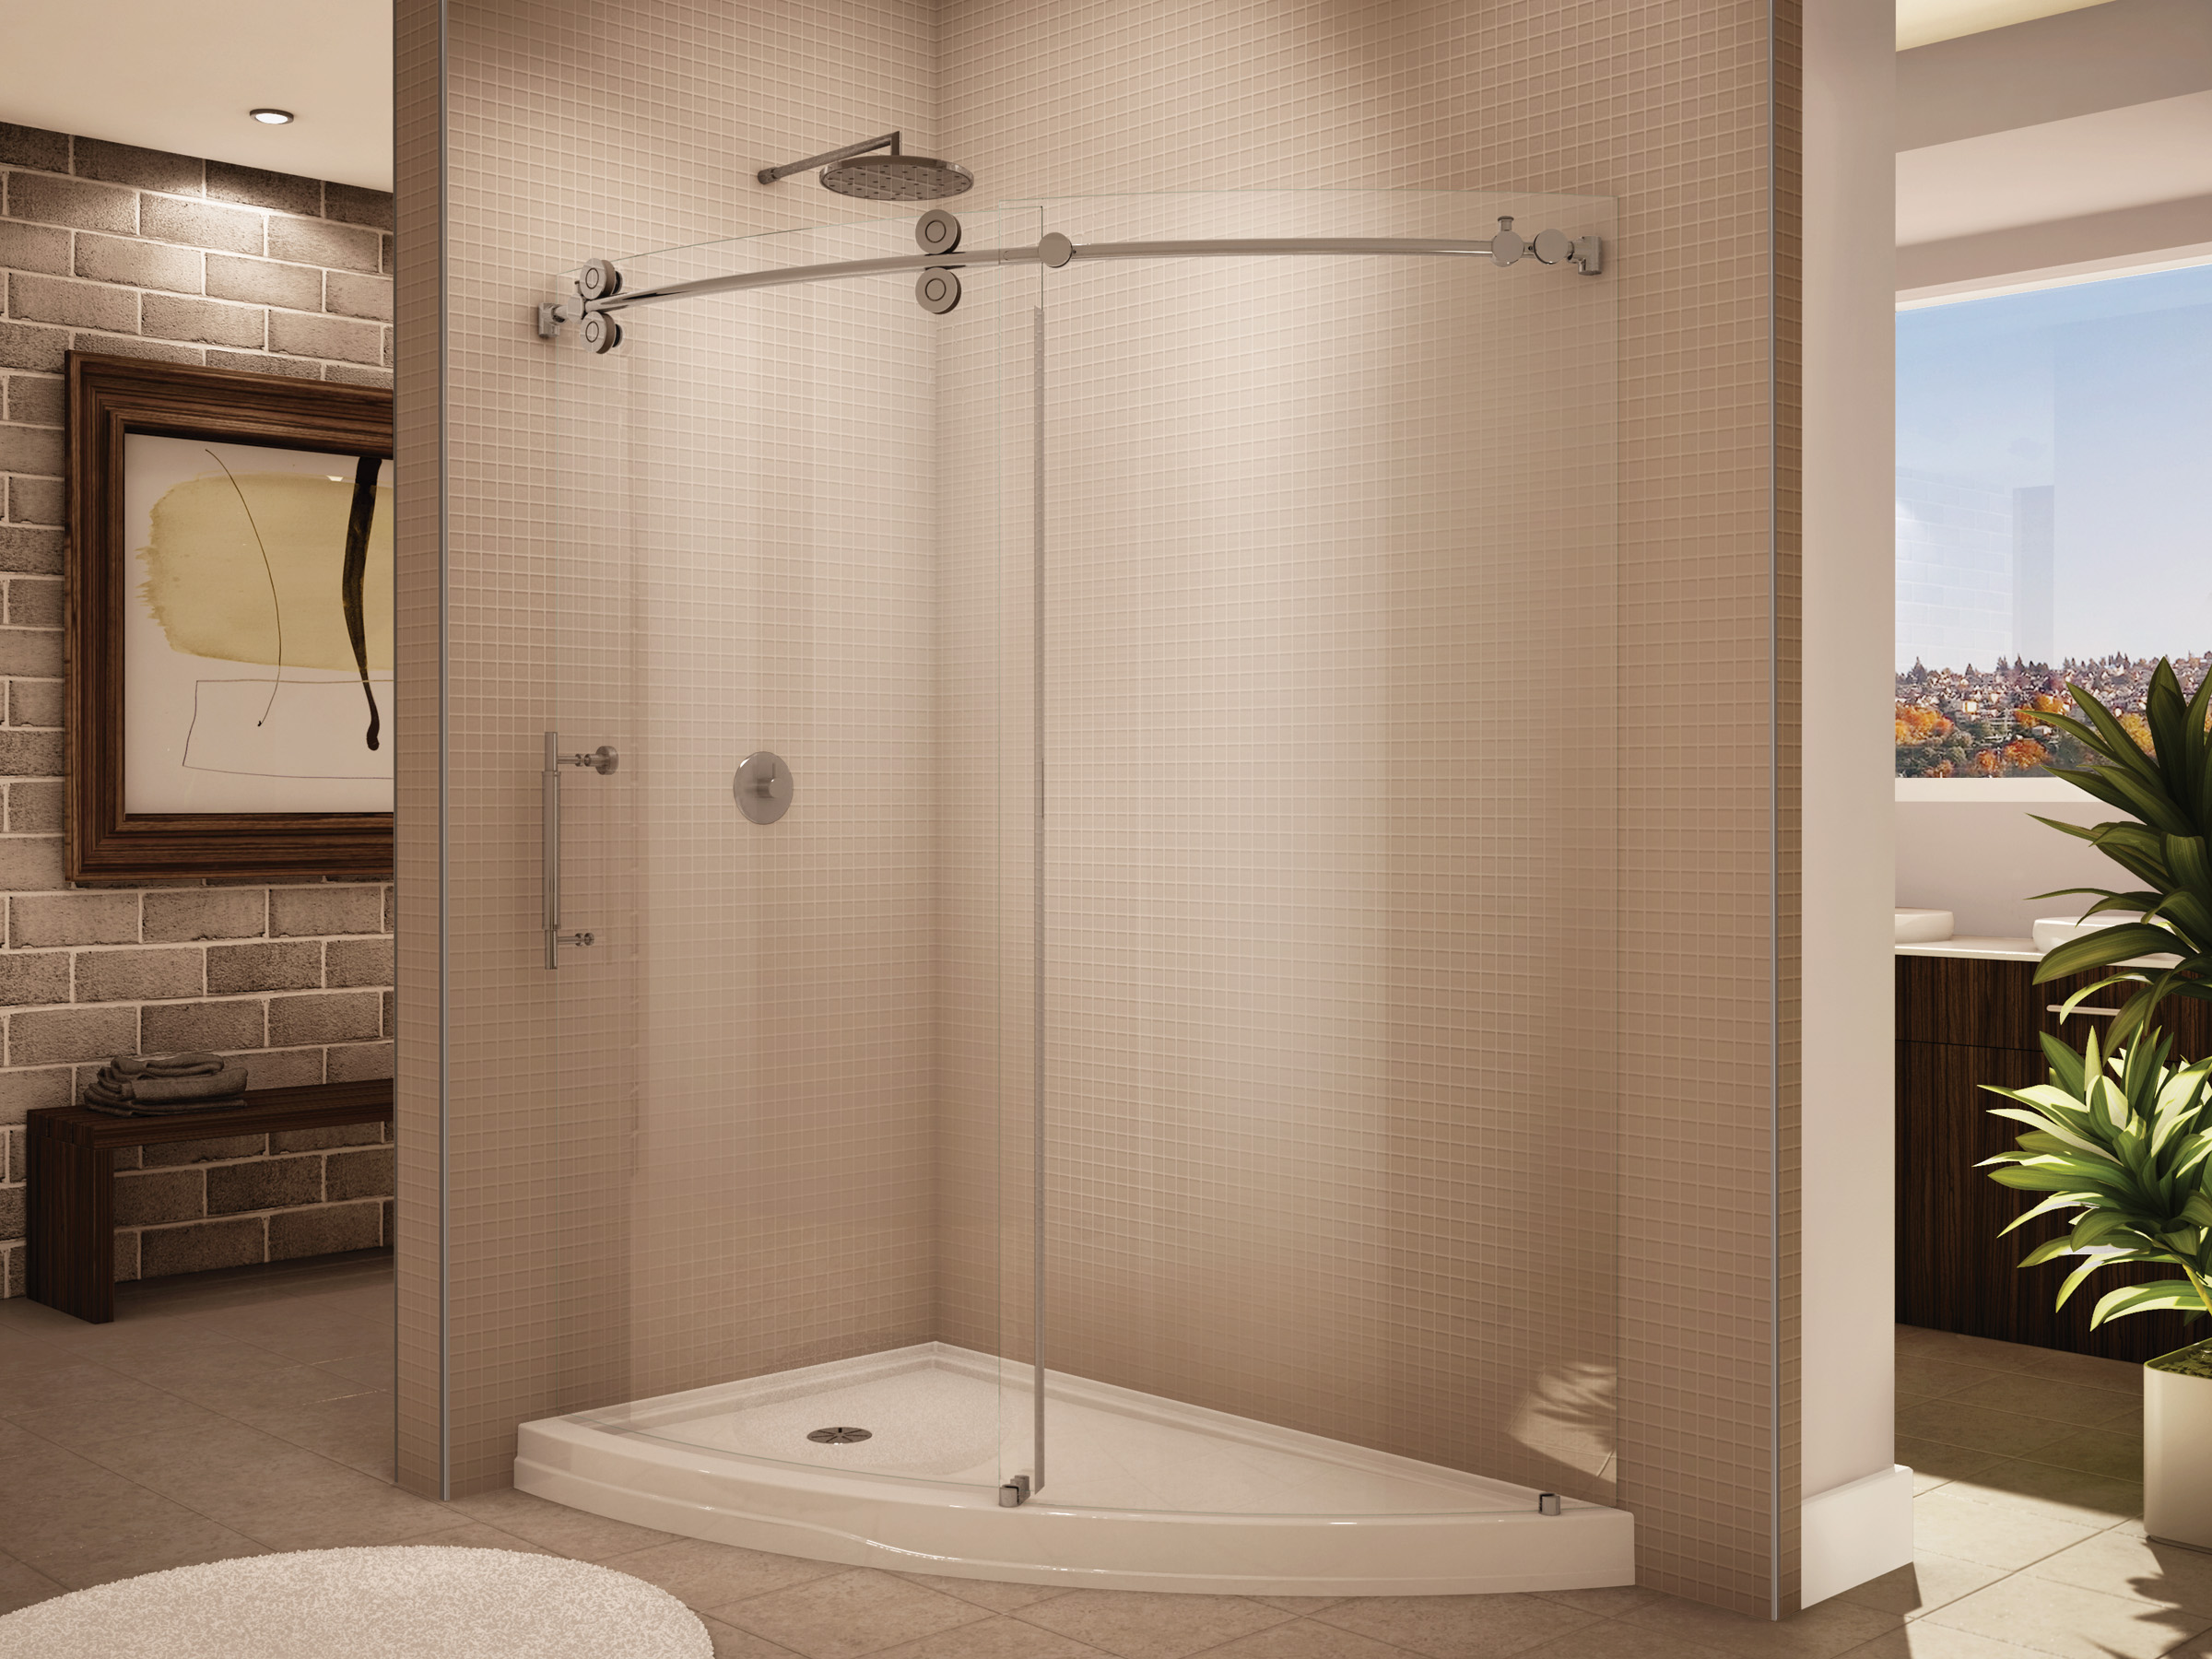 glass semi infinity french doors products basco shower tub frameless inch